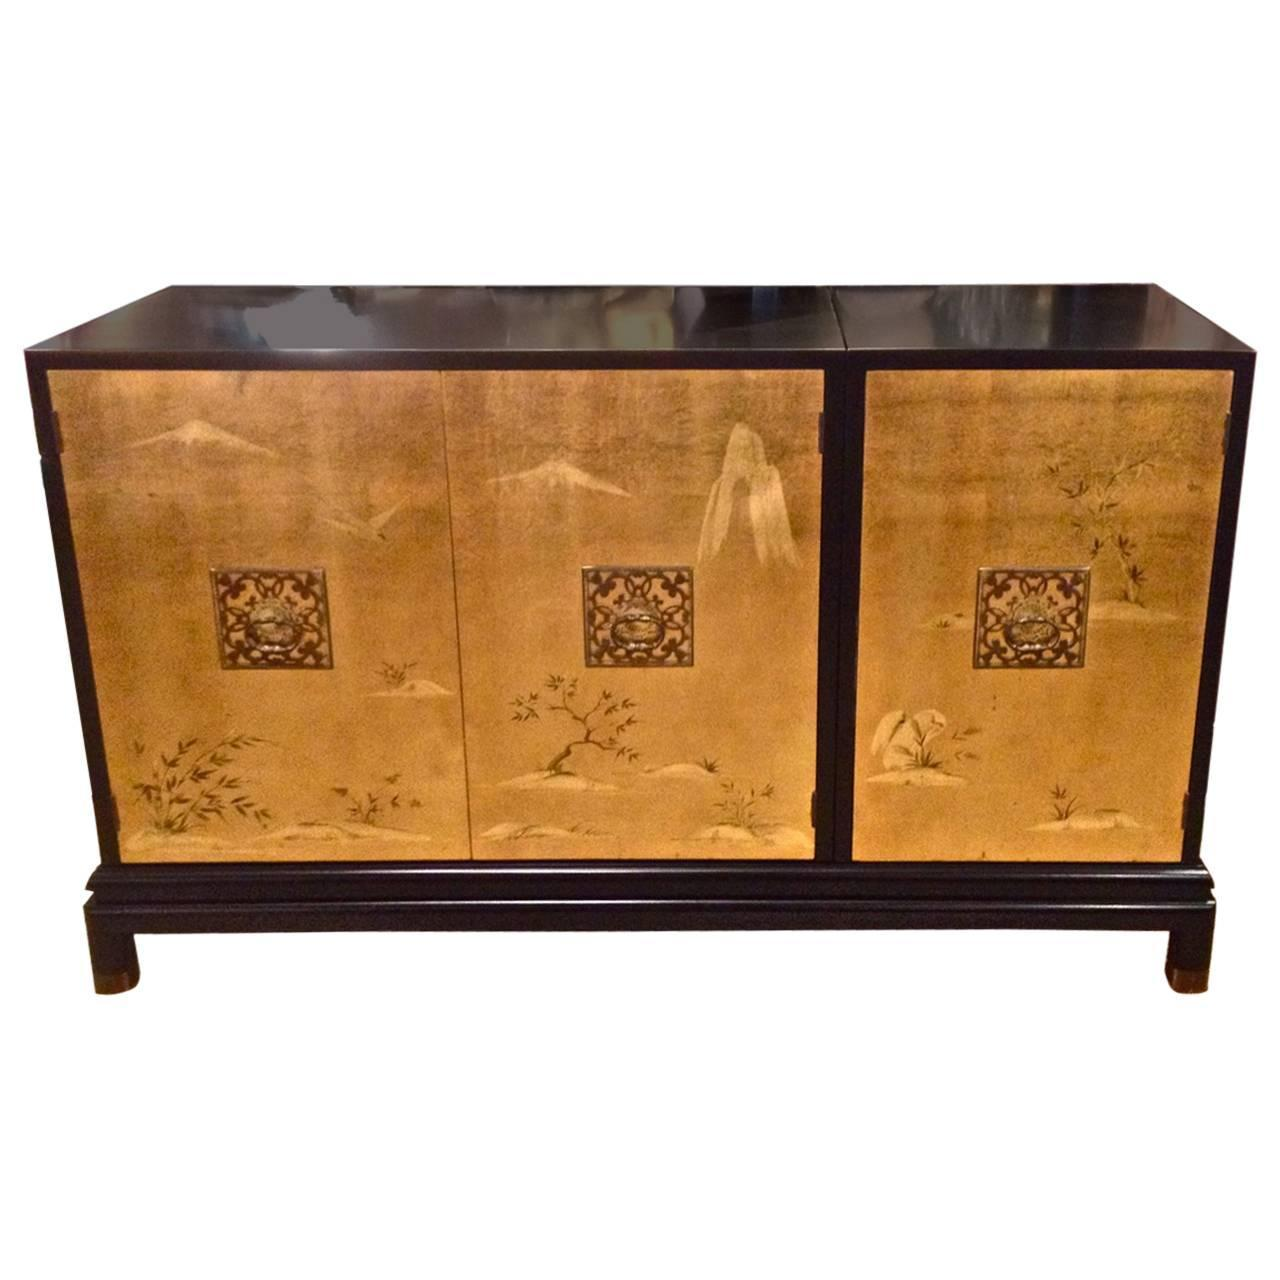 Renzo Rutili For Johnson Furniture In Gold Leaf And Black